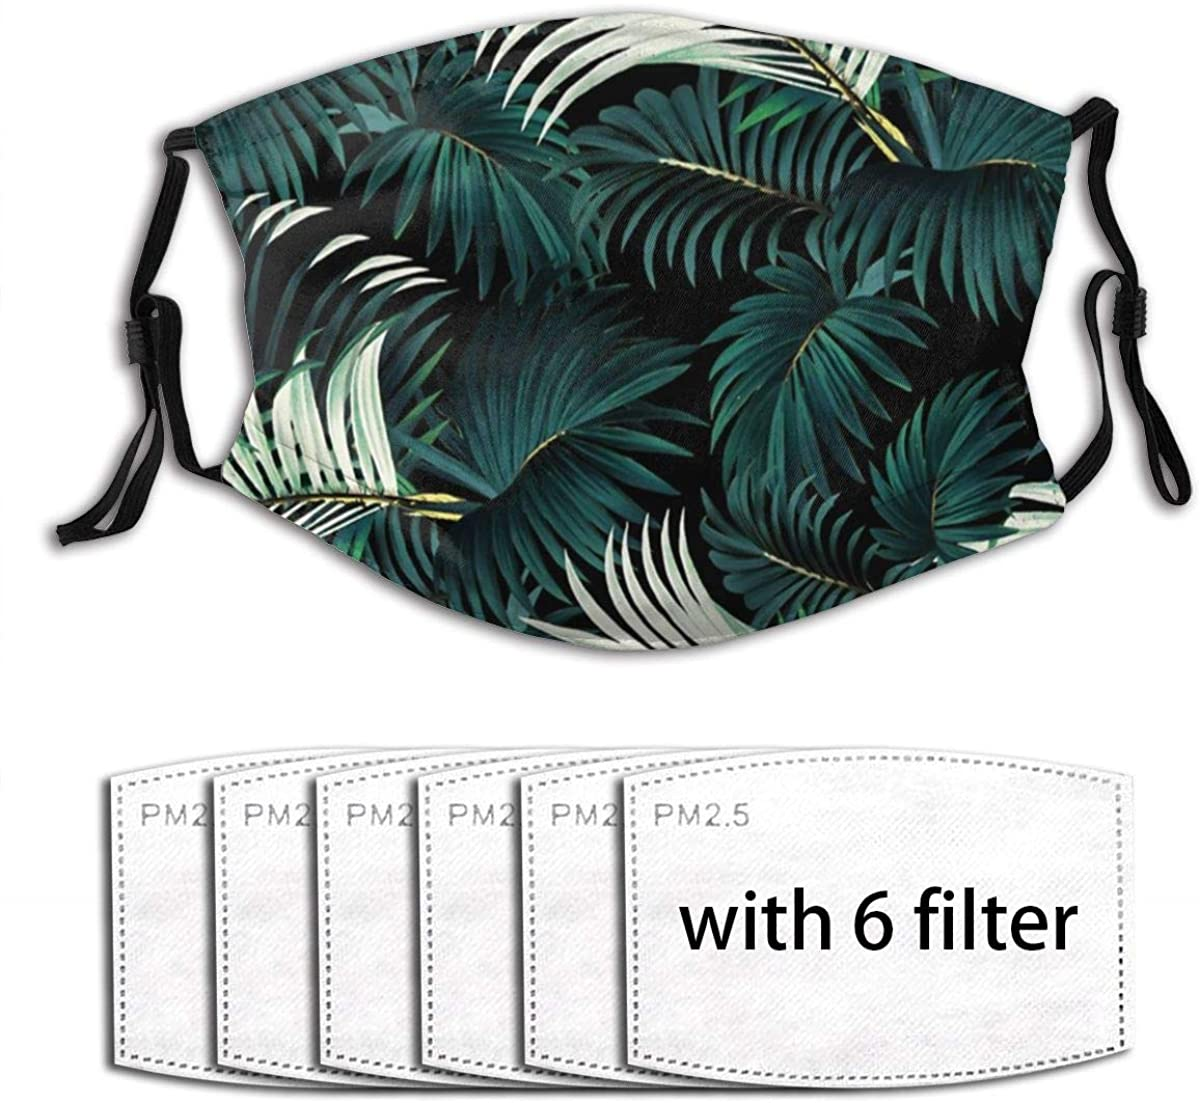 UV Protection Breathable Mouth Guard Activated Carbon 6 Filters, Tropical Jungle Dark Green Palm Leaves Monstera Leaf Dust Pollution PM2.5 Protection Cover for Garden Farmer - Adjustable Ear Loops